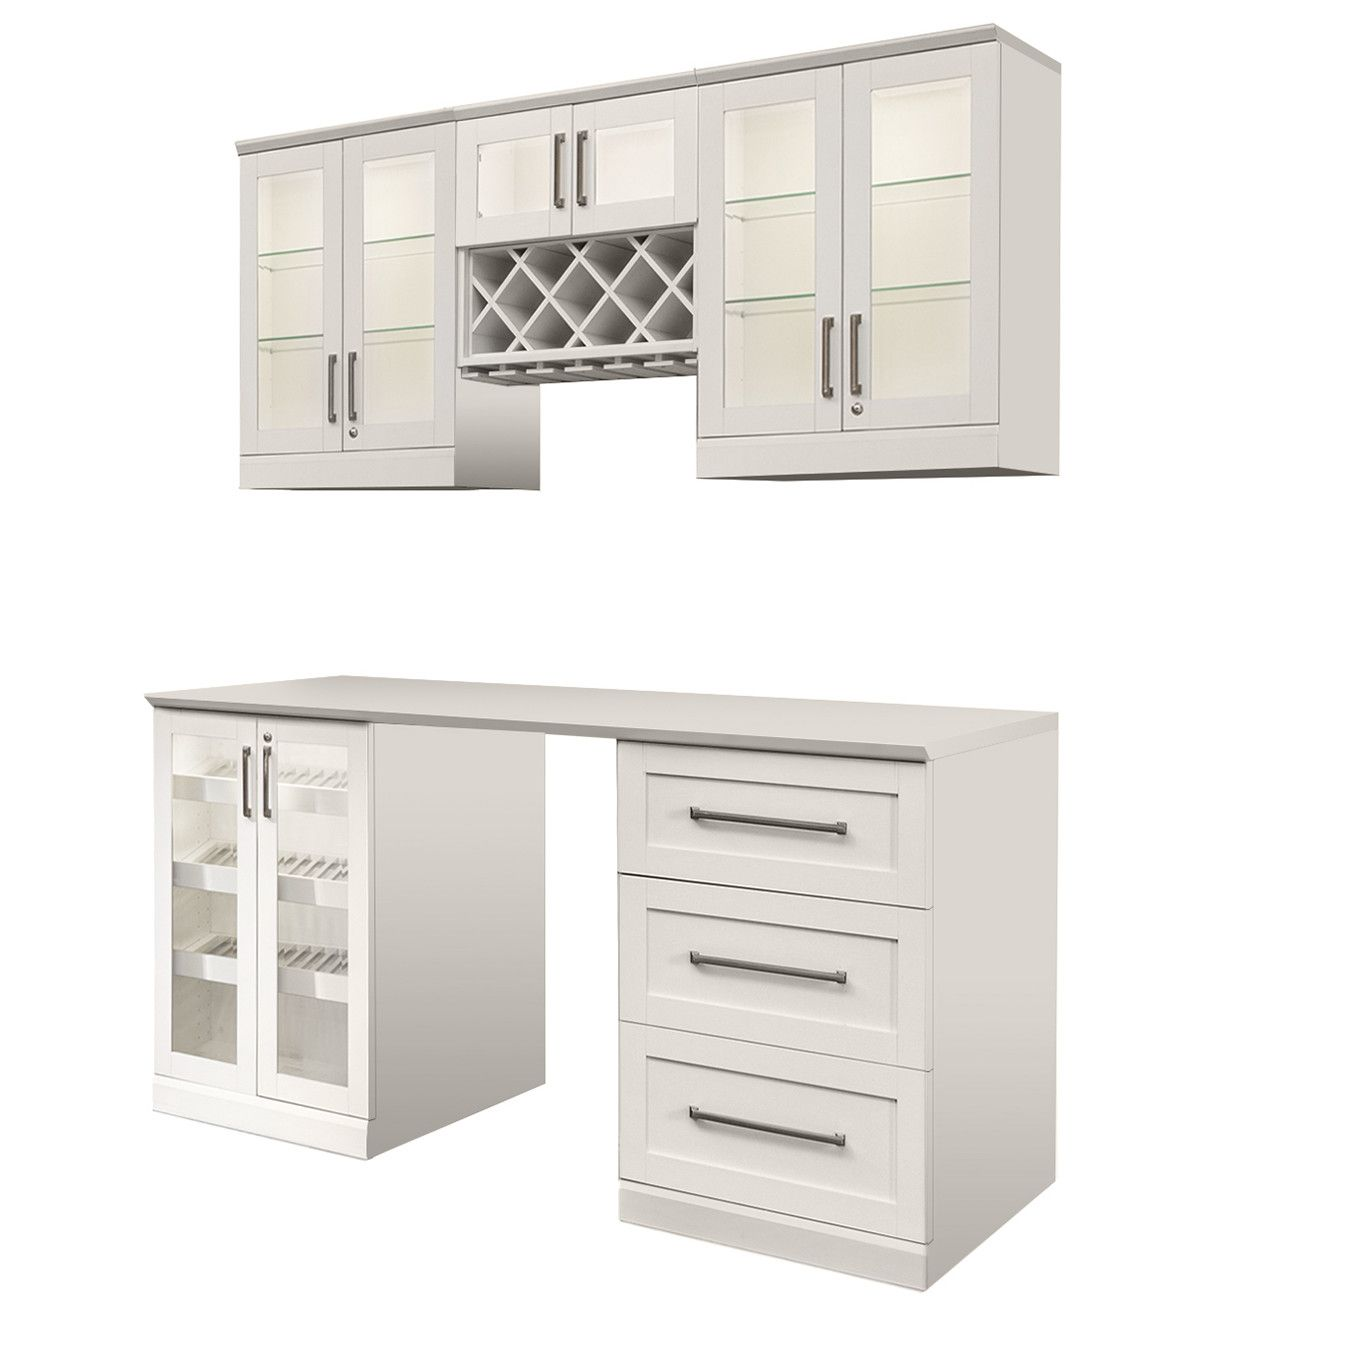 Shop Wayfair for Bars & Bar Sets to match every style and budget ...